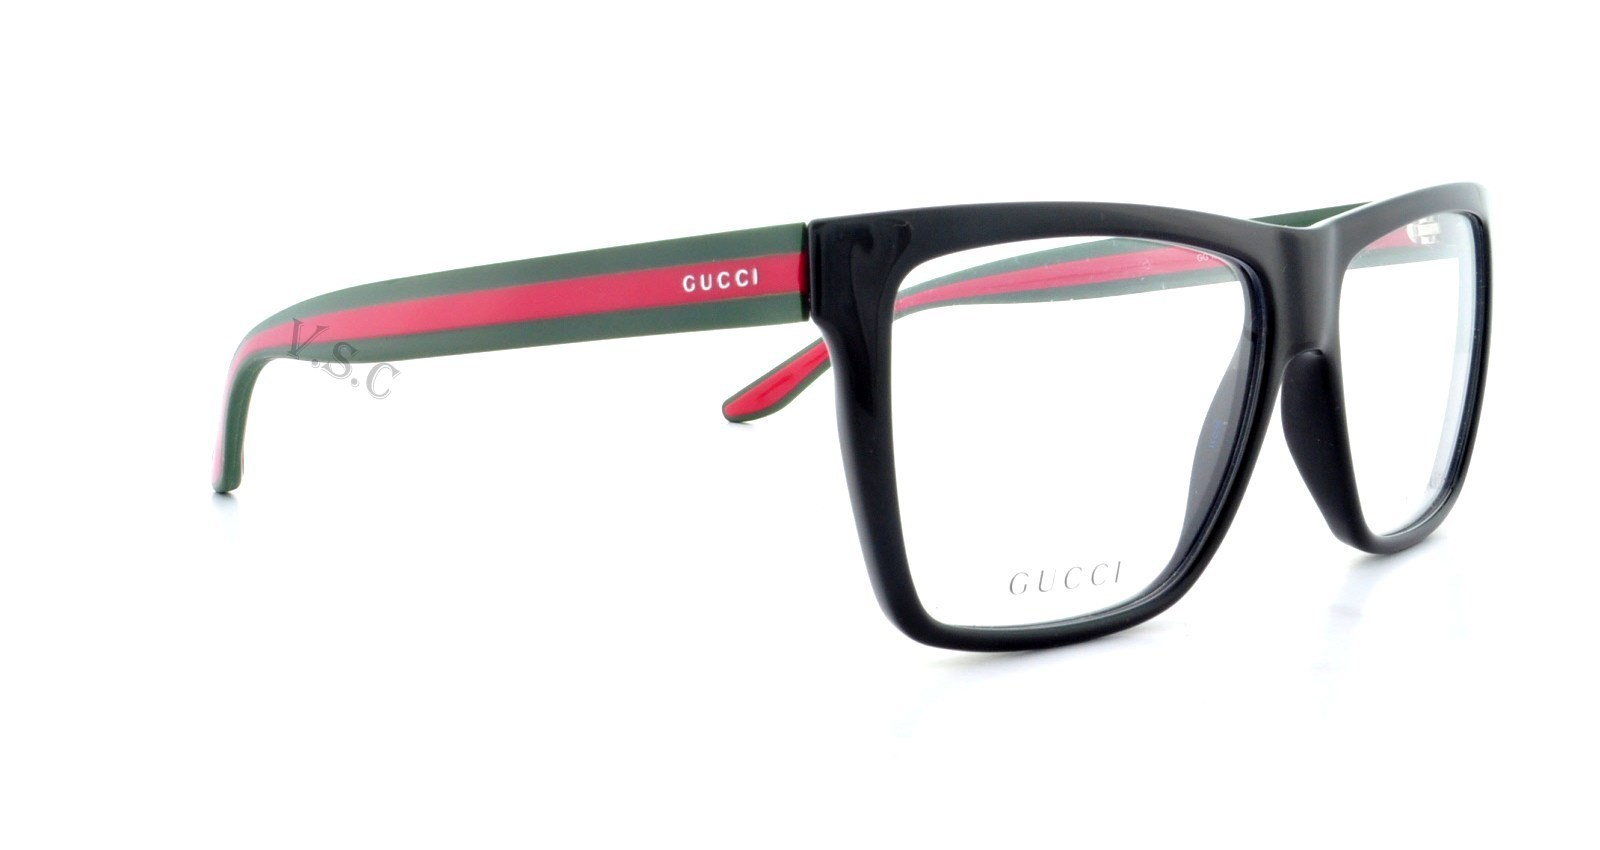 Eyeglass Frames Gucci : GUCCI 1008 EYEGLASSES GG EYE GLASSES 51N SHINY BLACK - RED ...